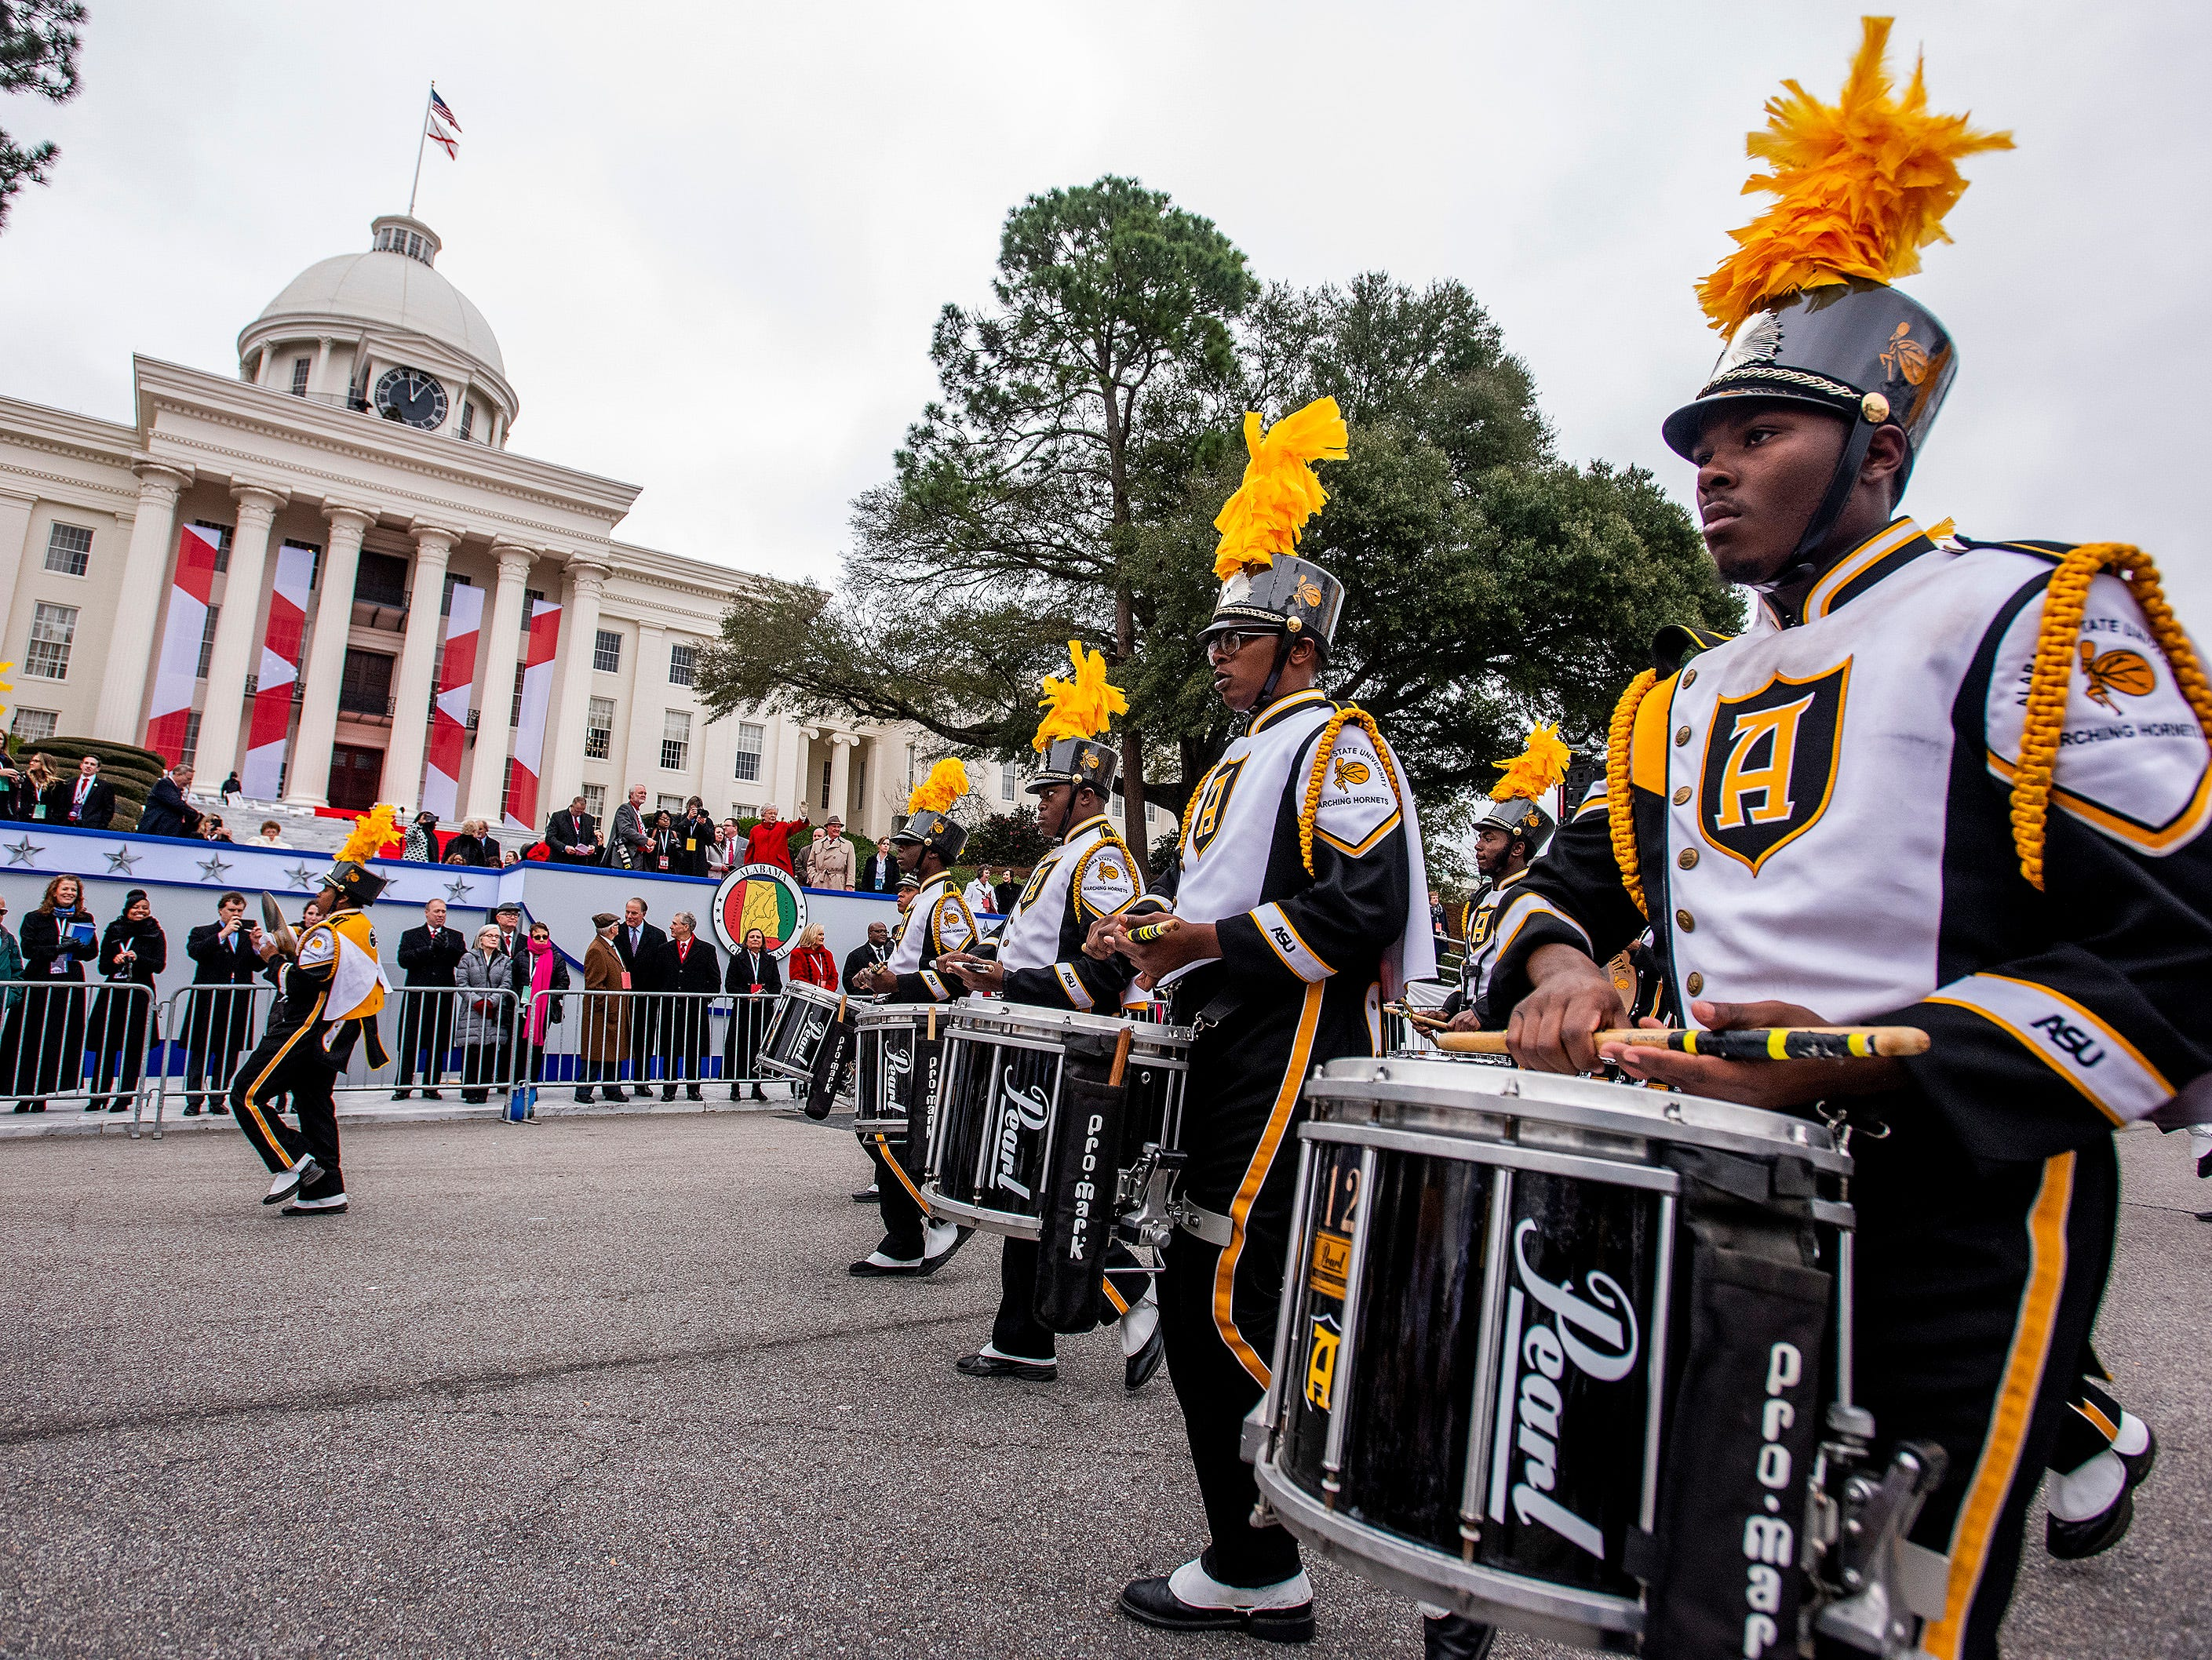 The Alabama State University Marching Hornets march in the Inauguration Parade for Governor Kay Ivey in Montgomery, Ala., on Monday January 14, 2019.